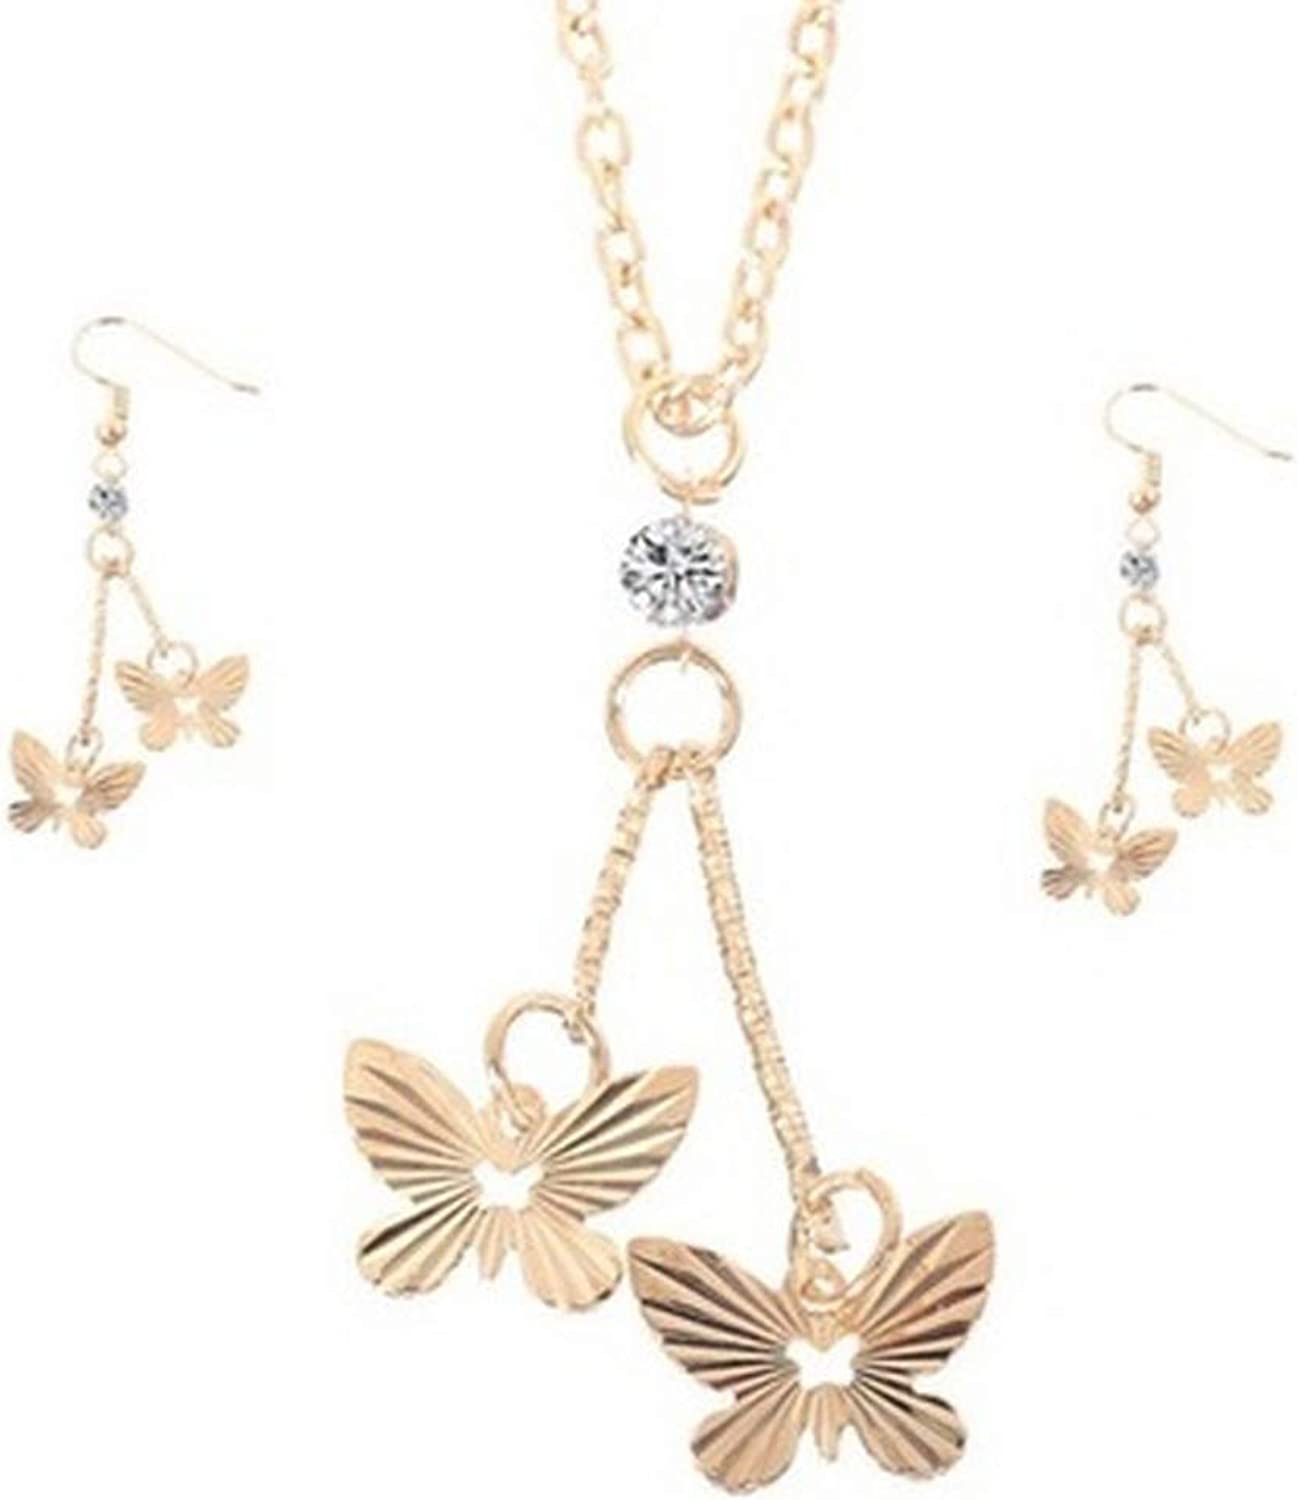 Socialfloats Gold Color Butterfly Dangle Pendant Necklace Earrings Jewelry Set